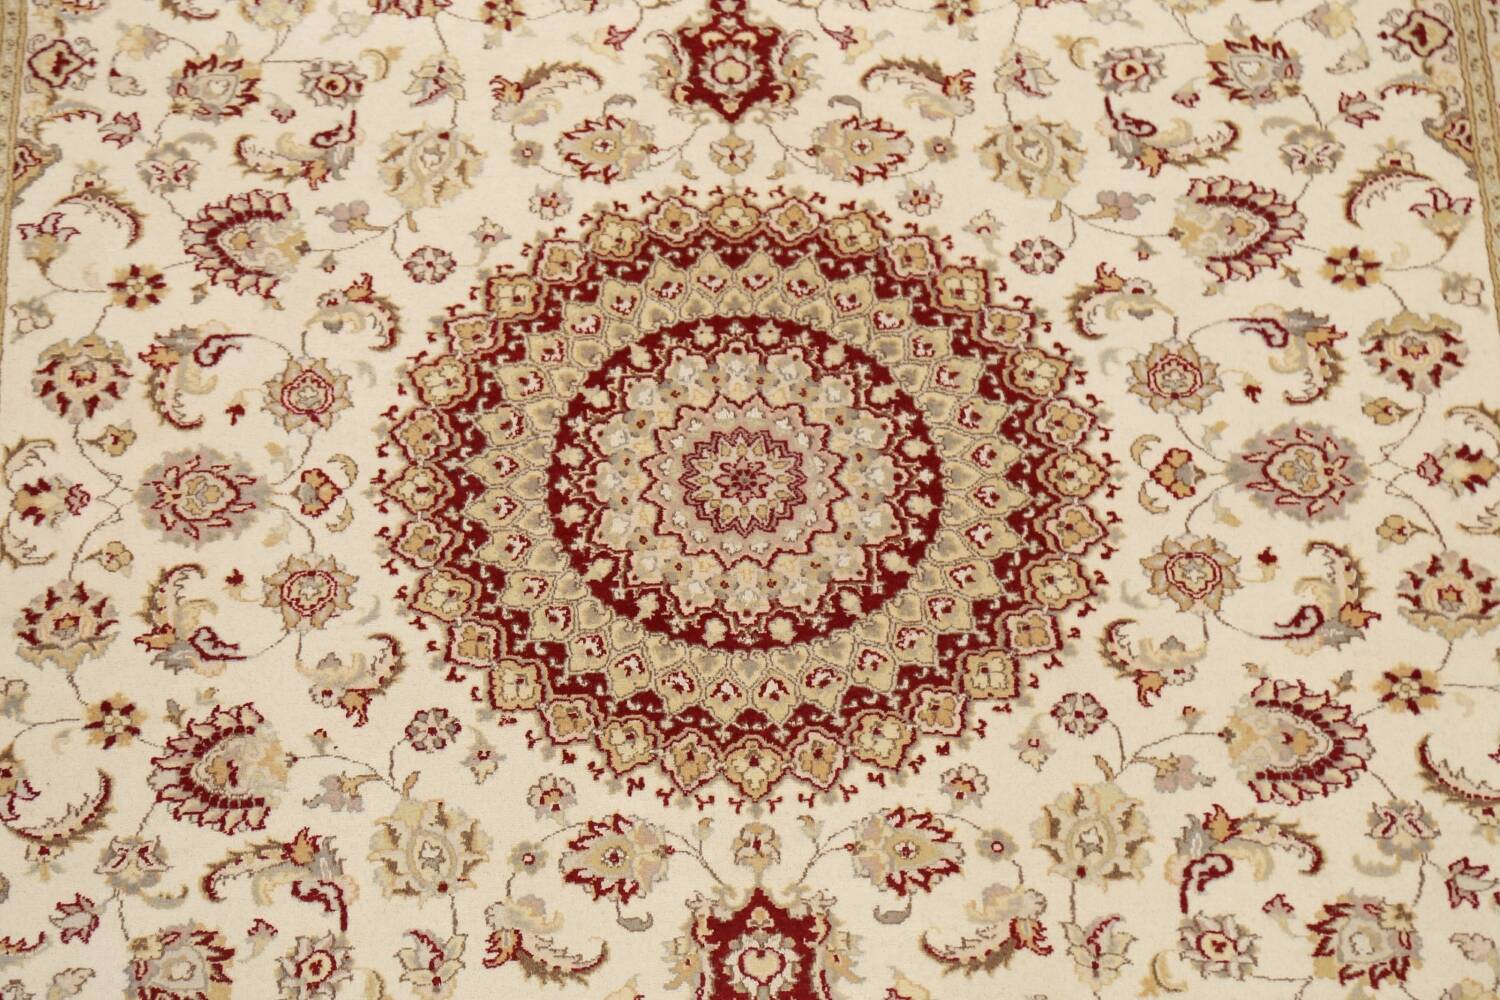 100% Vegetable Dye Floral Tabriz Oriental Area Rug 6x9 image 4